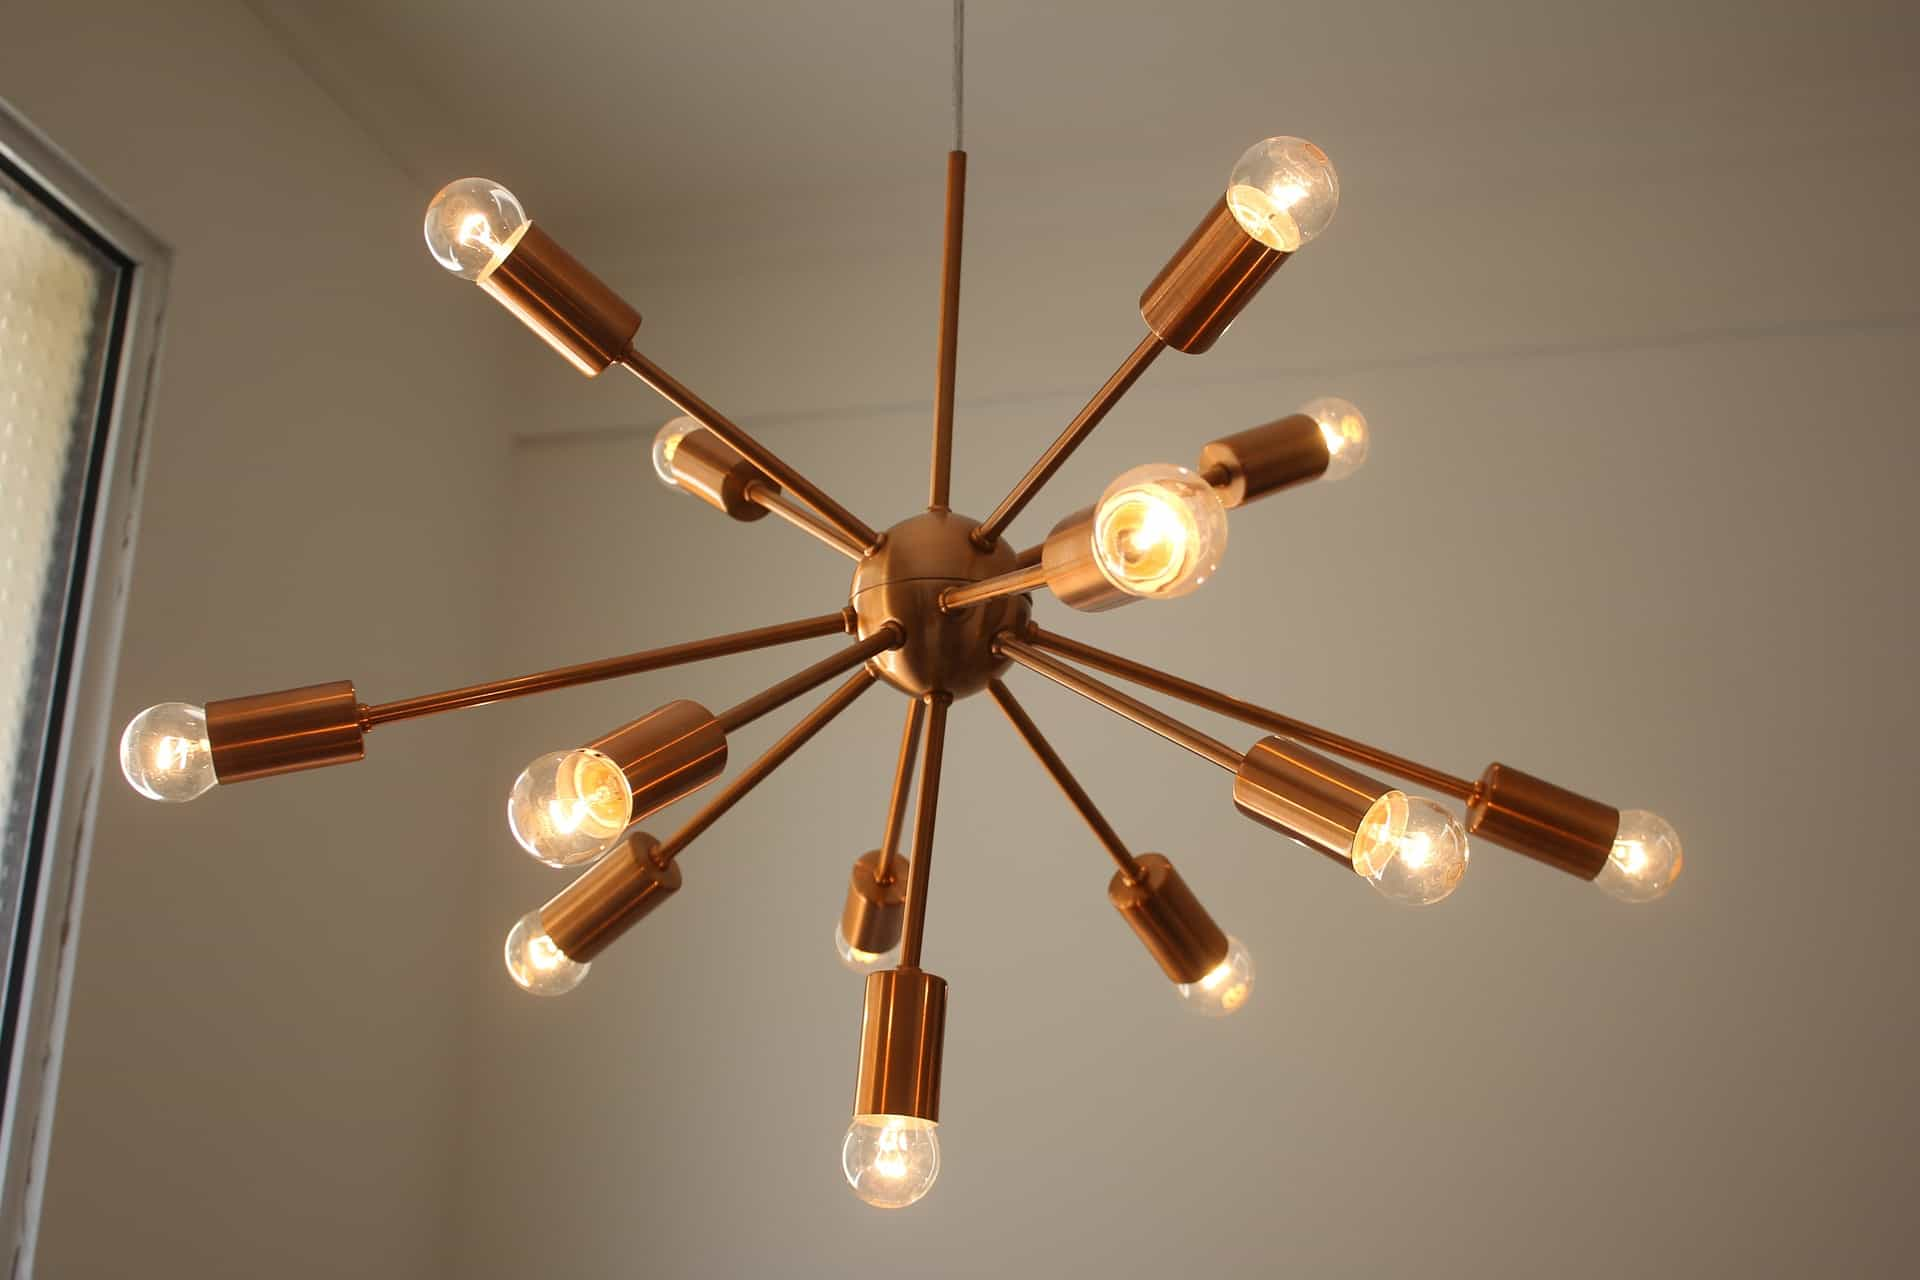 10 Stunning Contemporary Chandelier Designs for Your Home